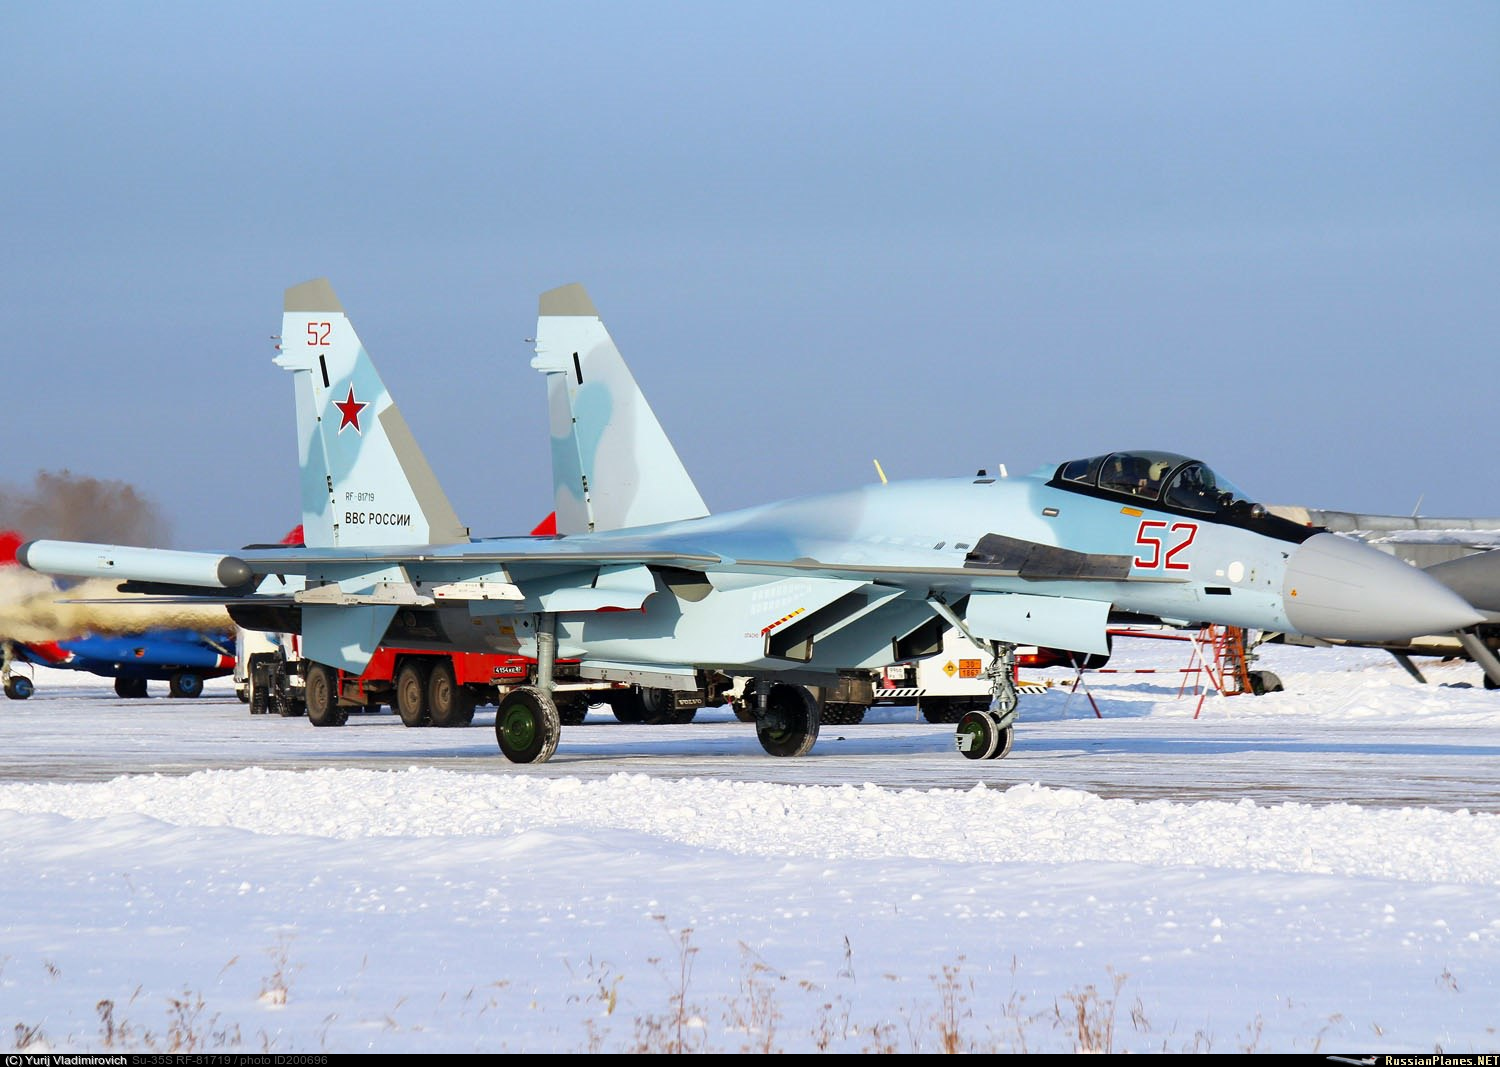 http://russianplanes.net/images/to201000/200696.jpg